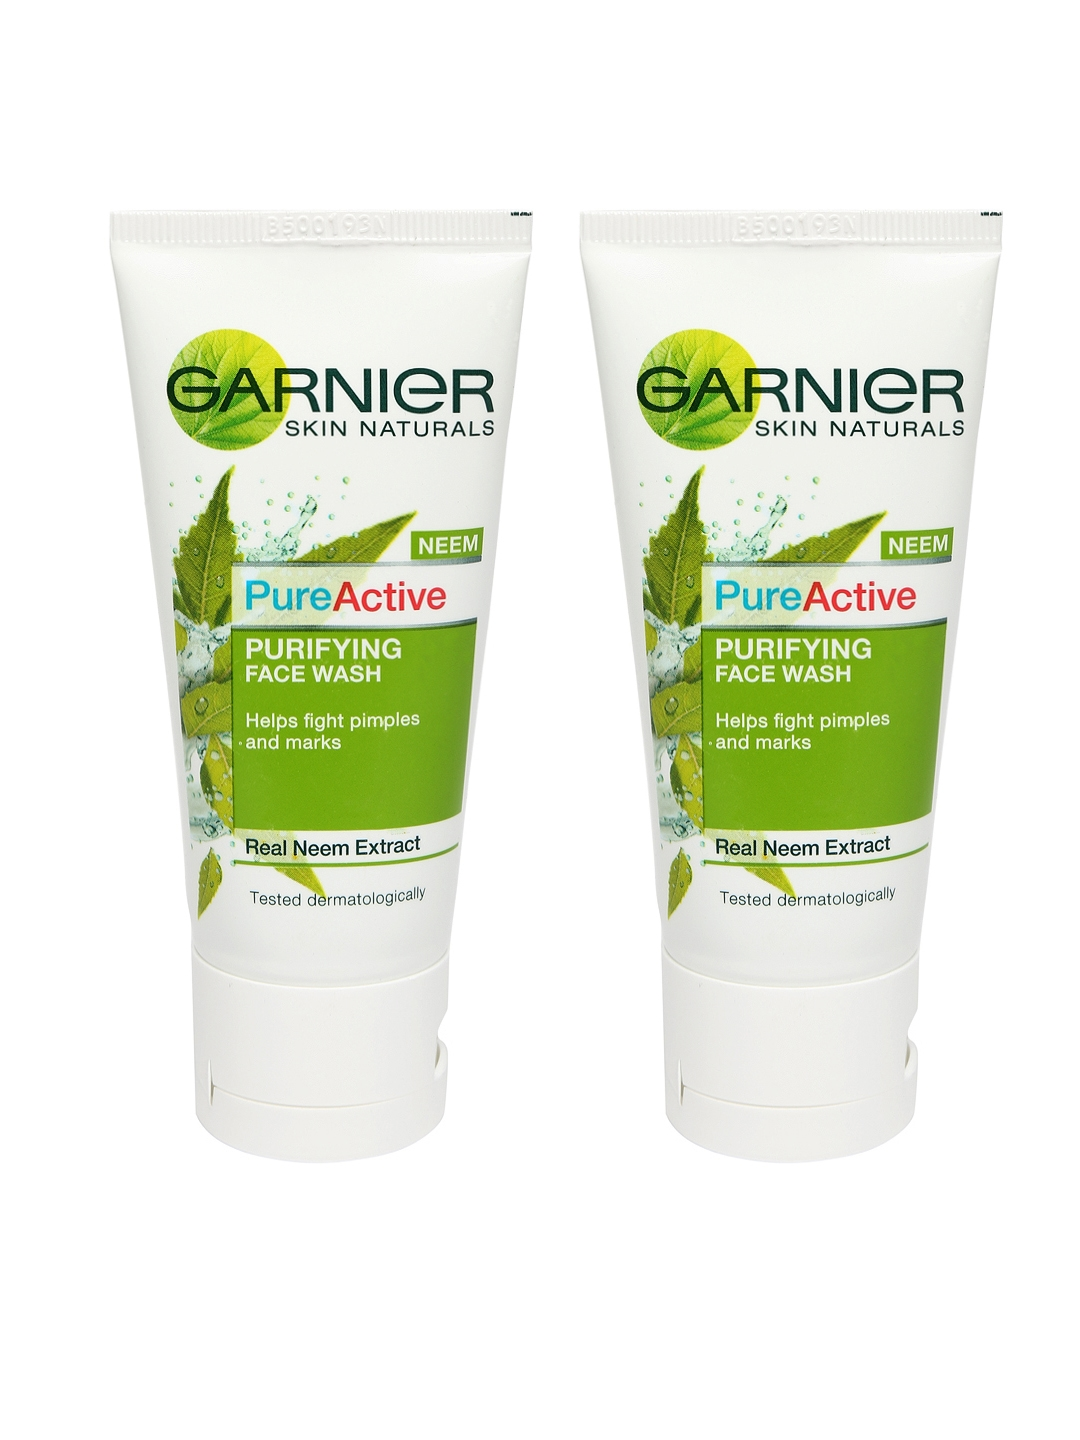 Garnier Set of 2 Pure Active Neem Purifying Face Washes